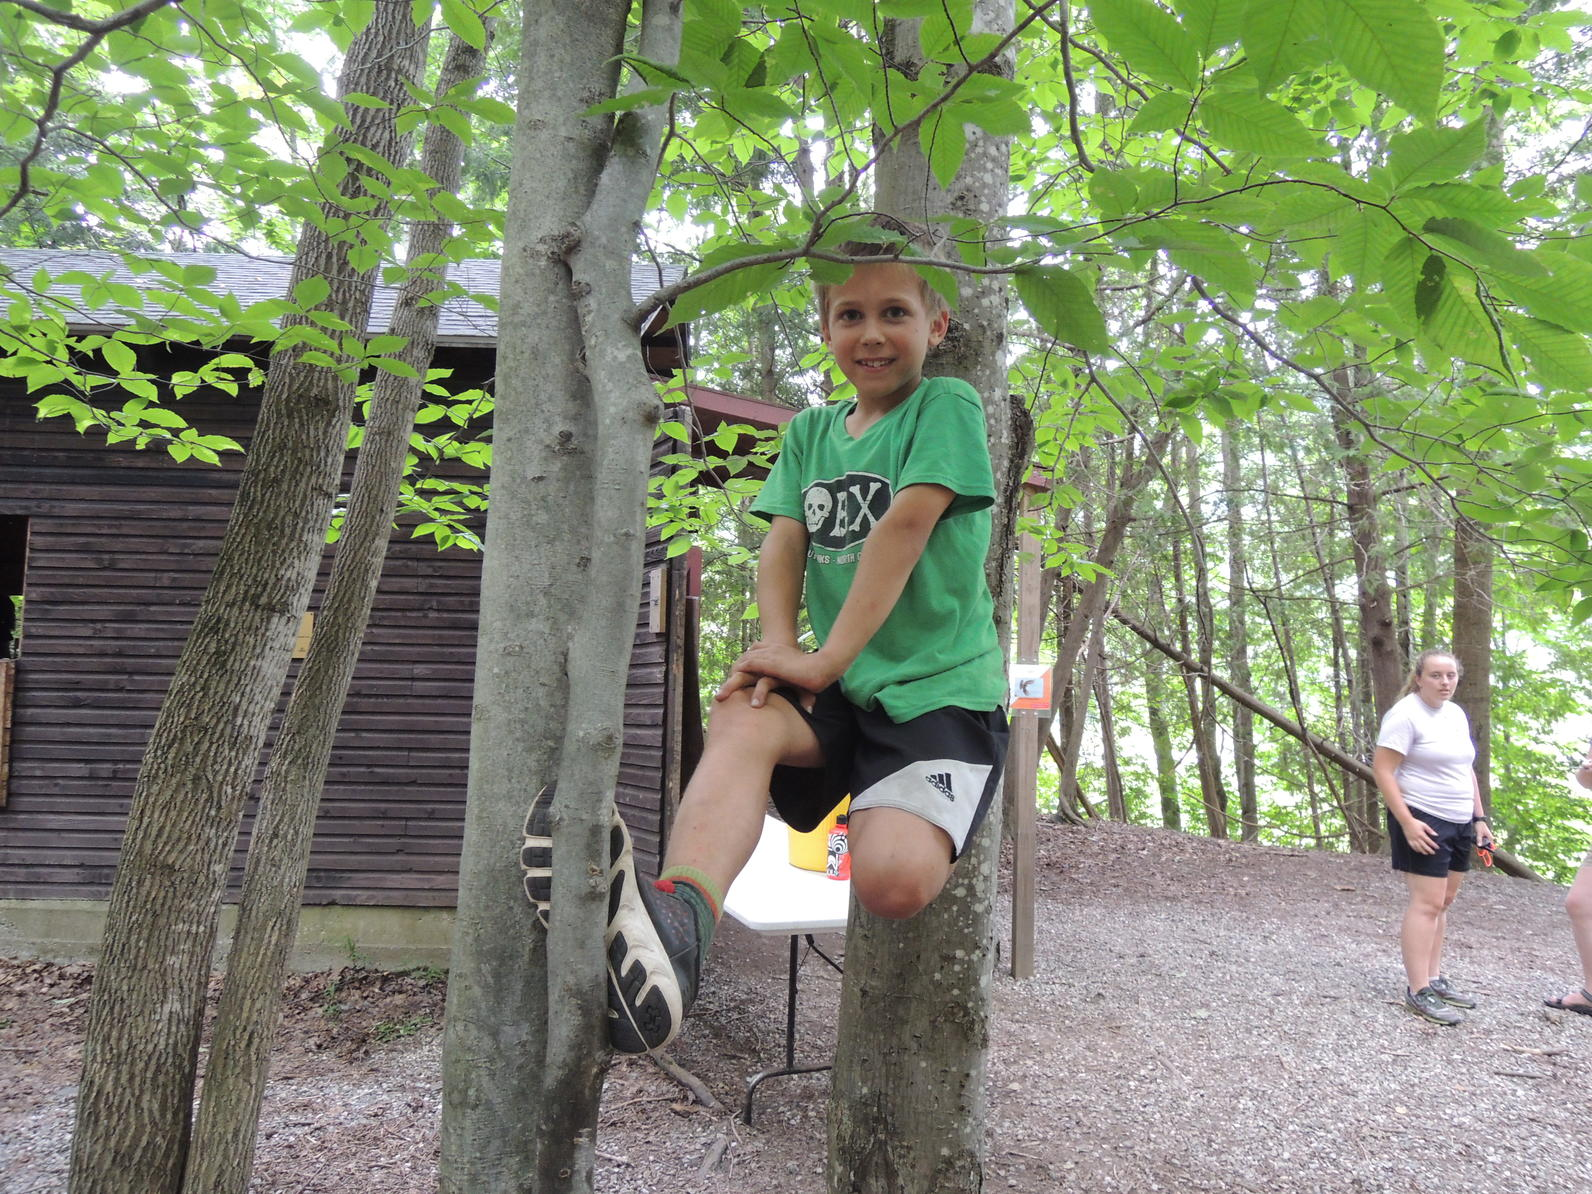 Camper climbing at camp